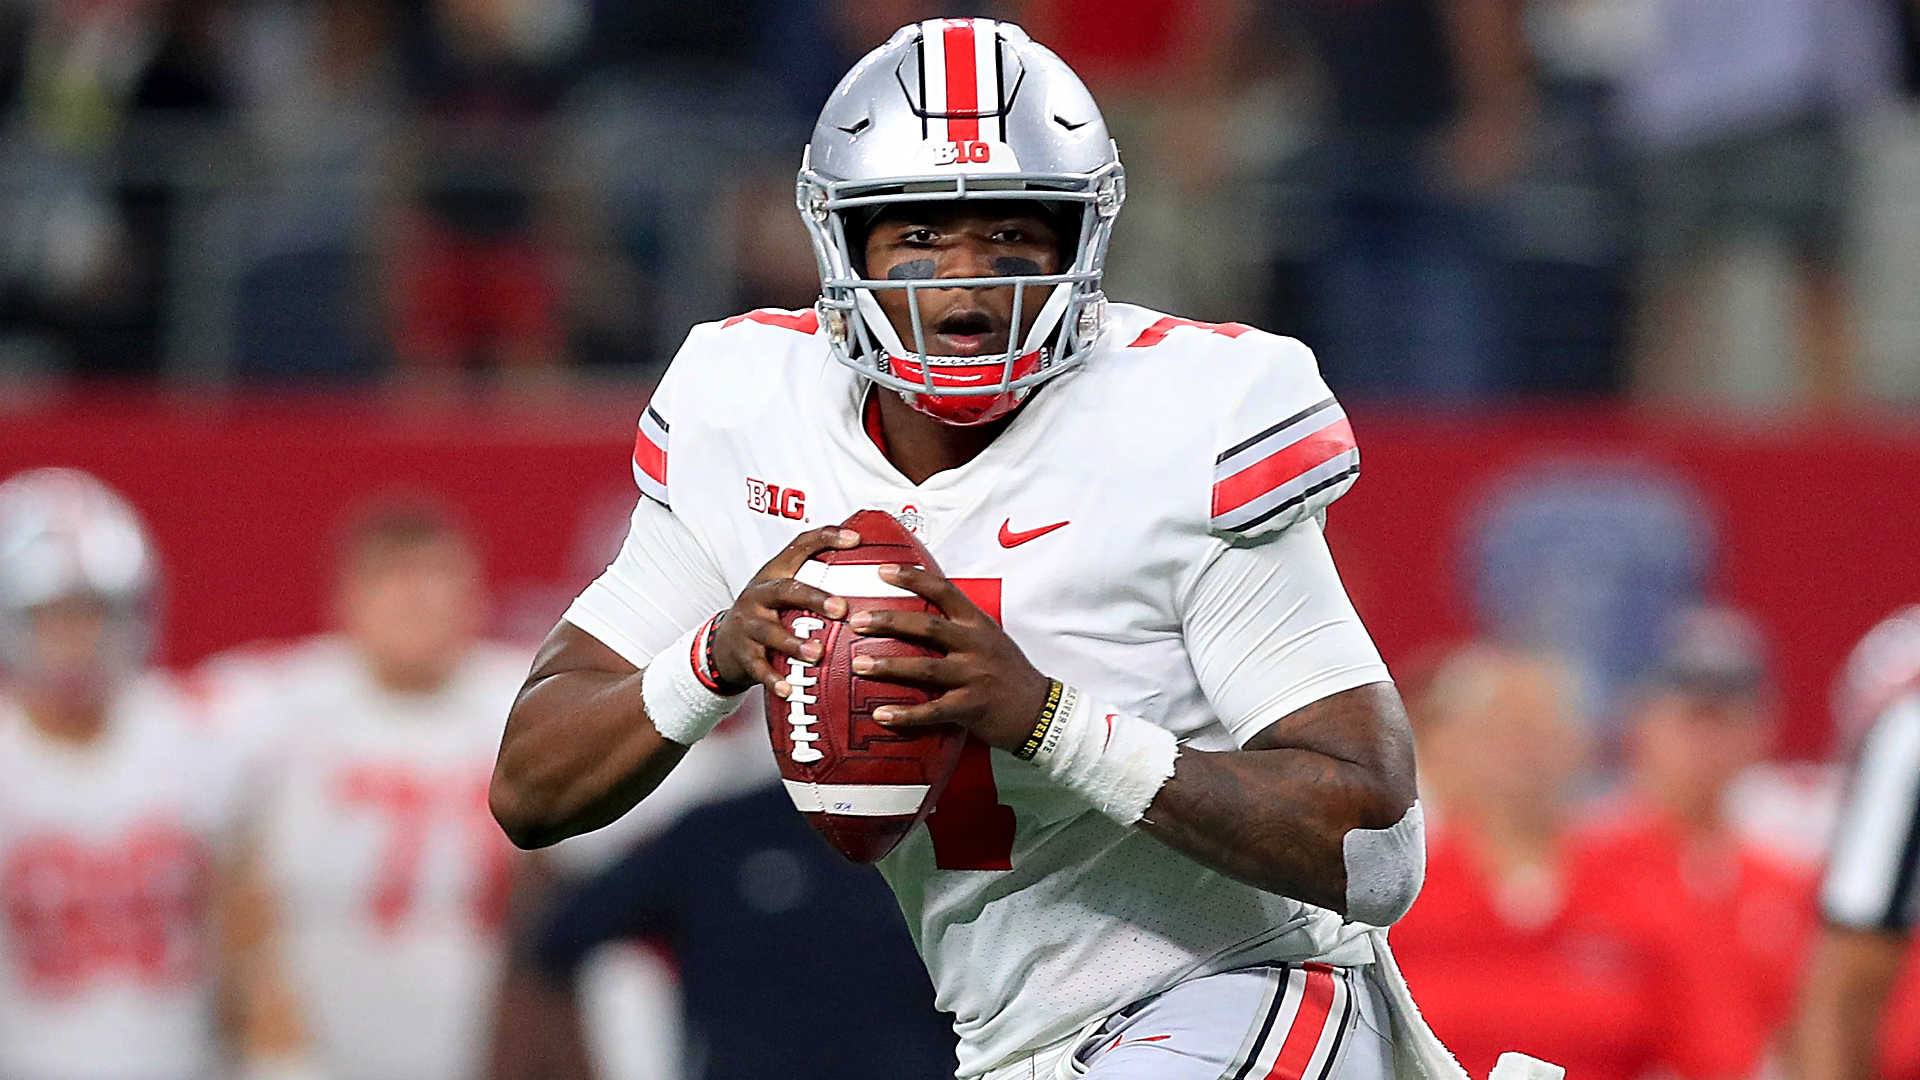 Ohio State Vs. Penn State Live Stream